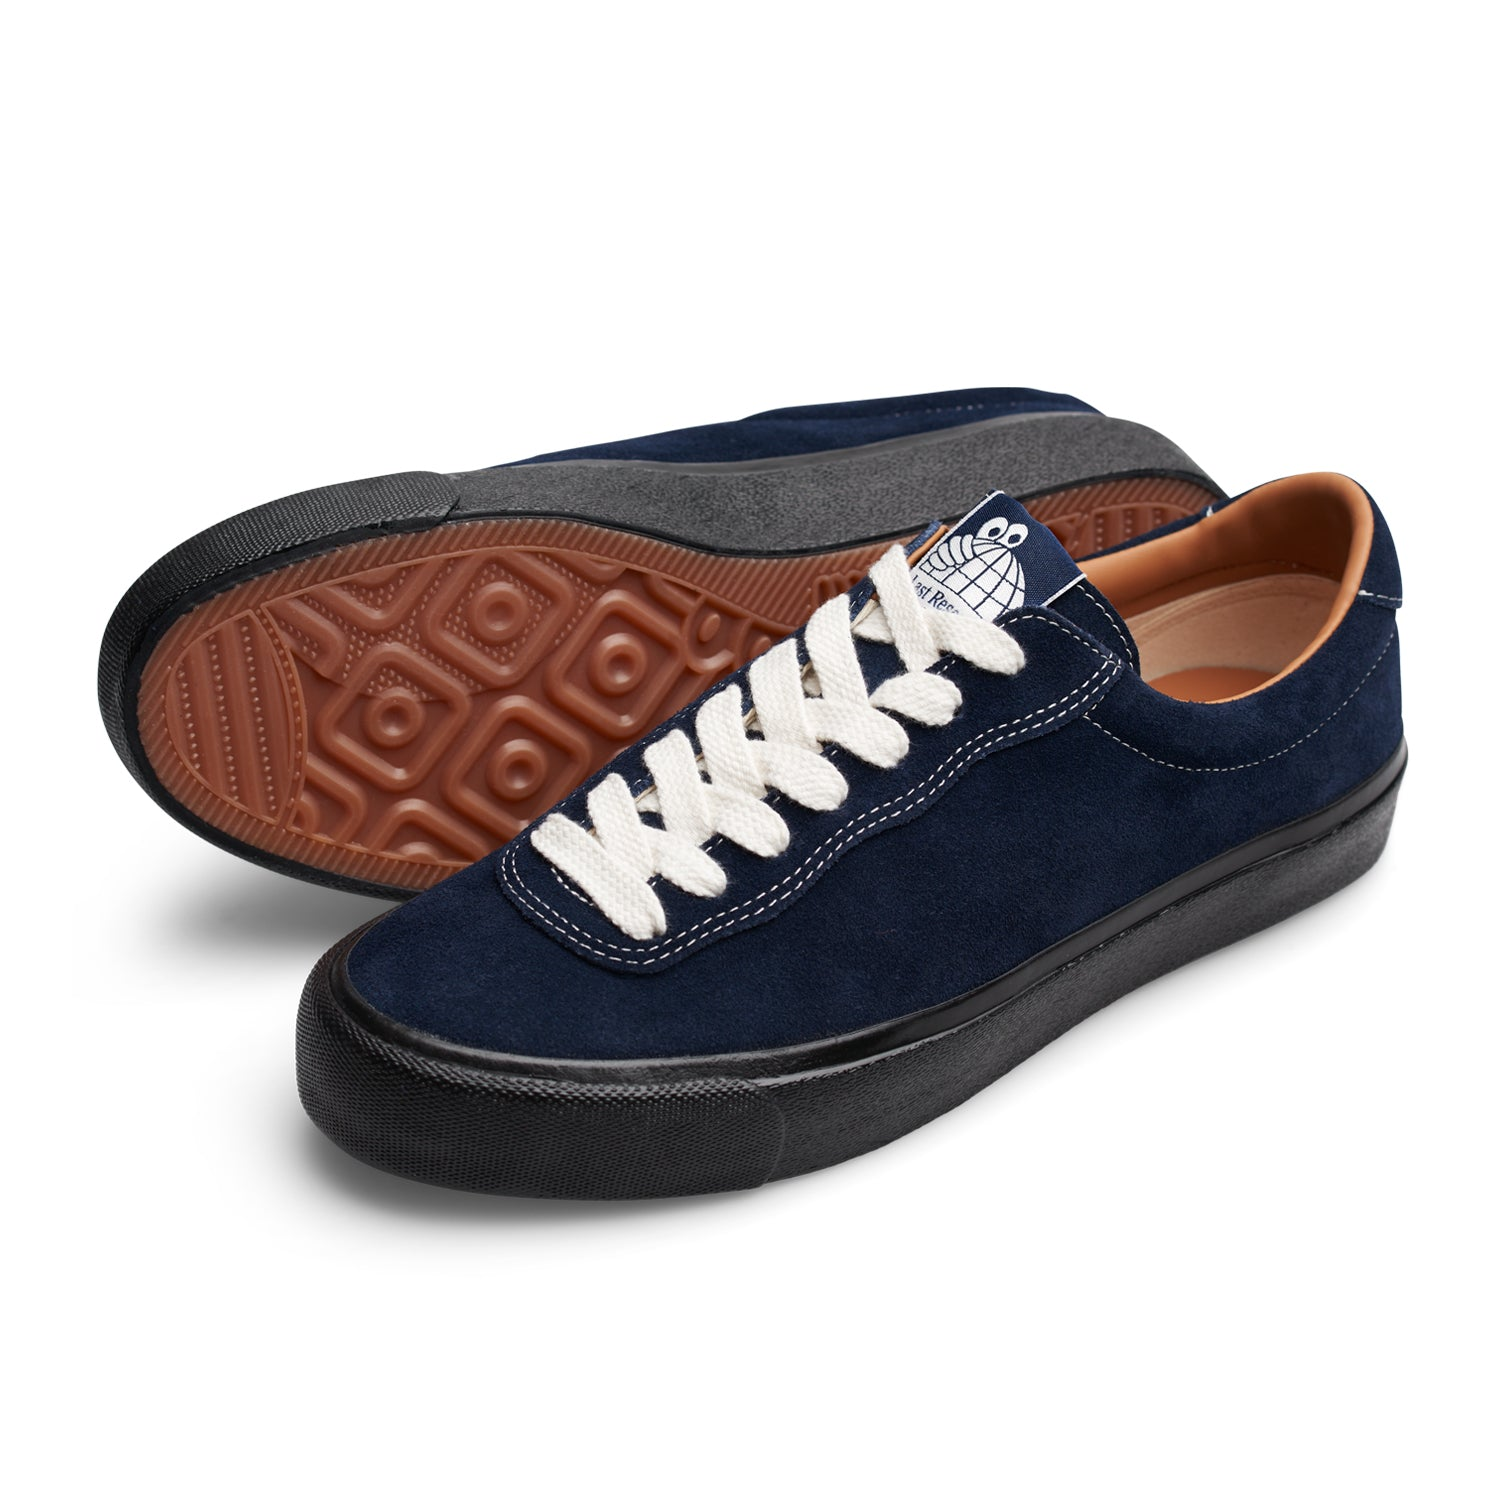 Last Resort VM001 Suede Lo Navy/Black